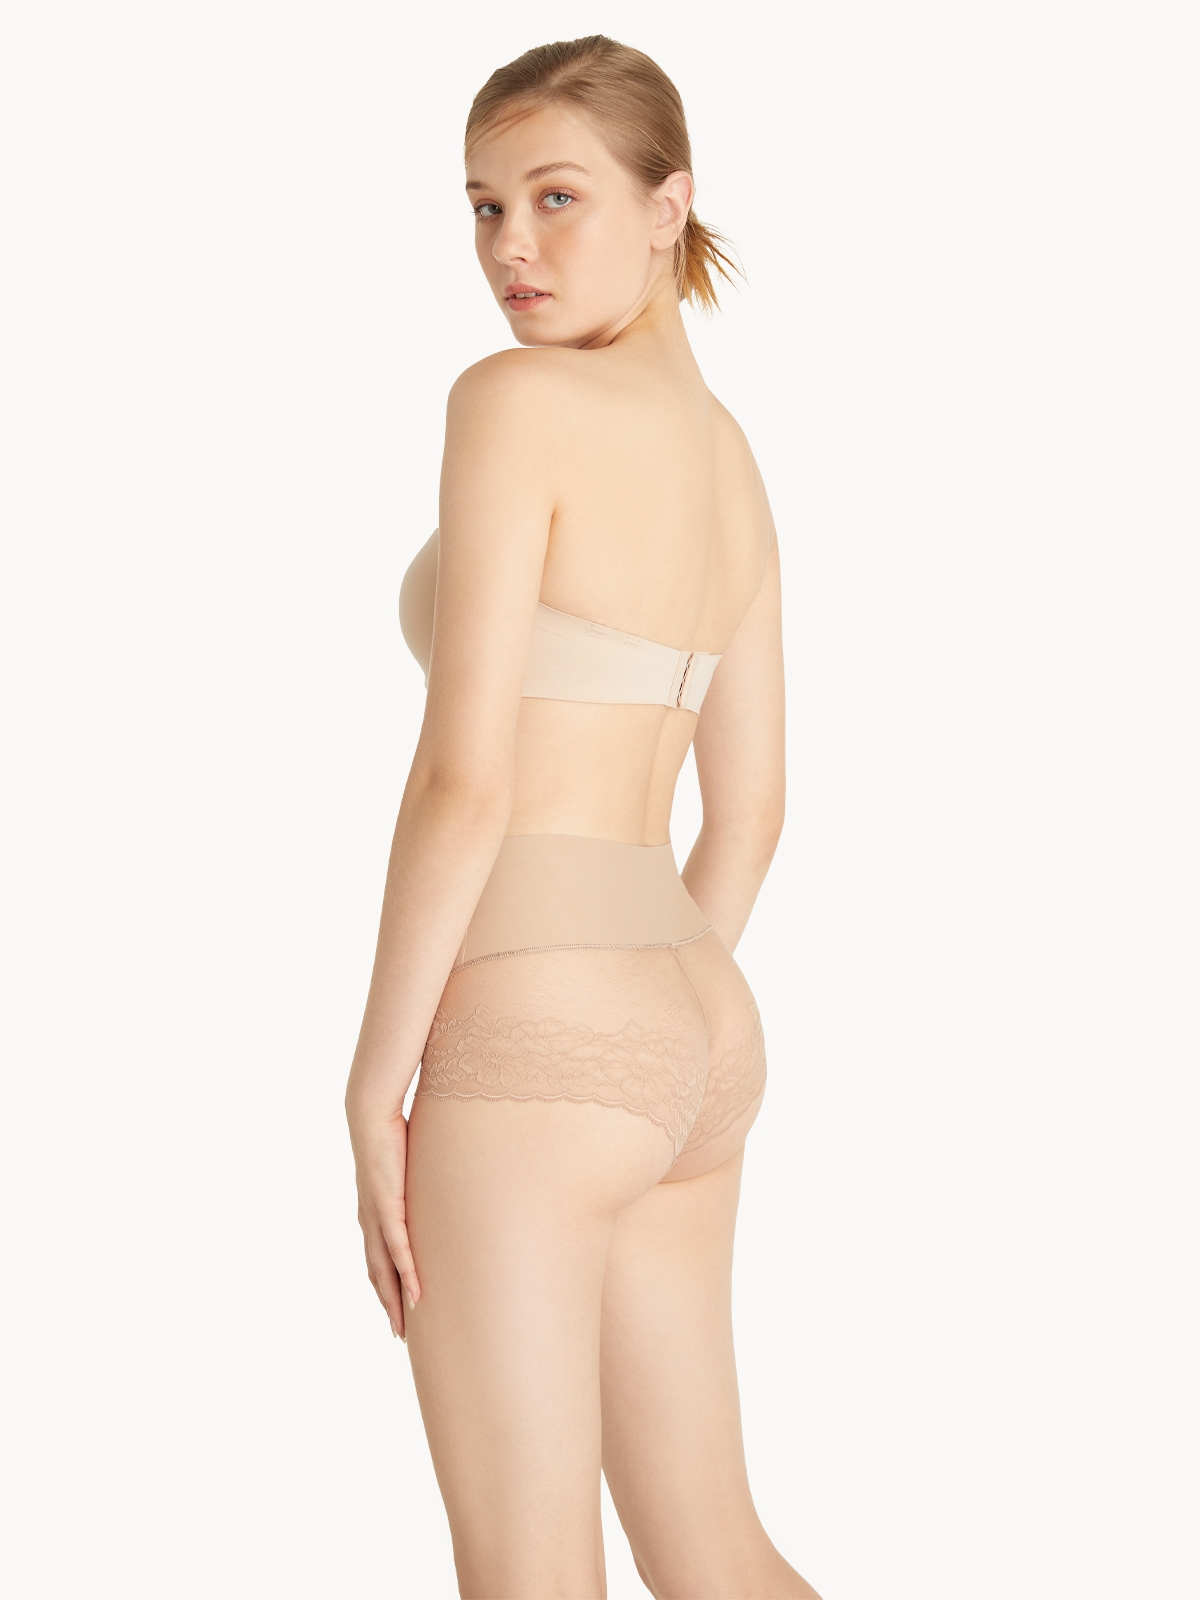 Up and Under TGIF Lace Panty Nude